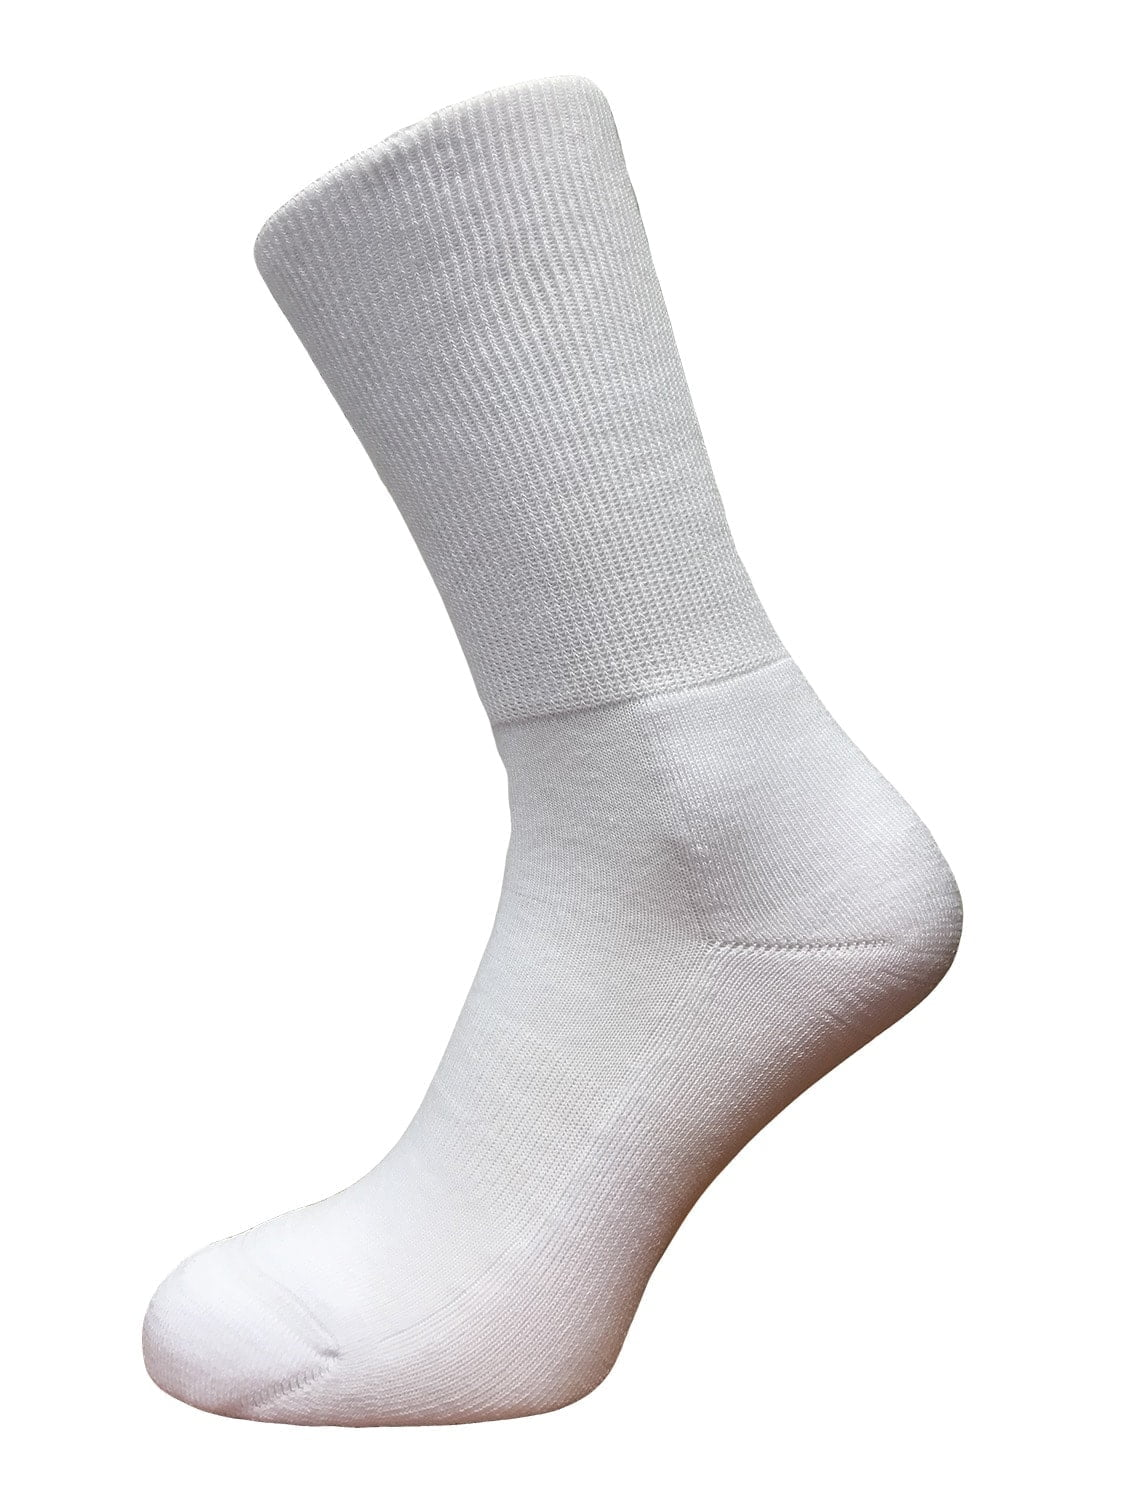 white mid calf cushioned sole socks wide fit available